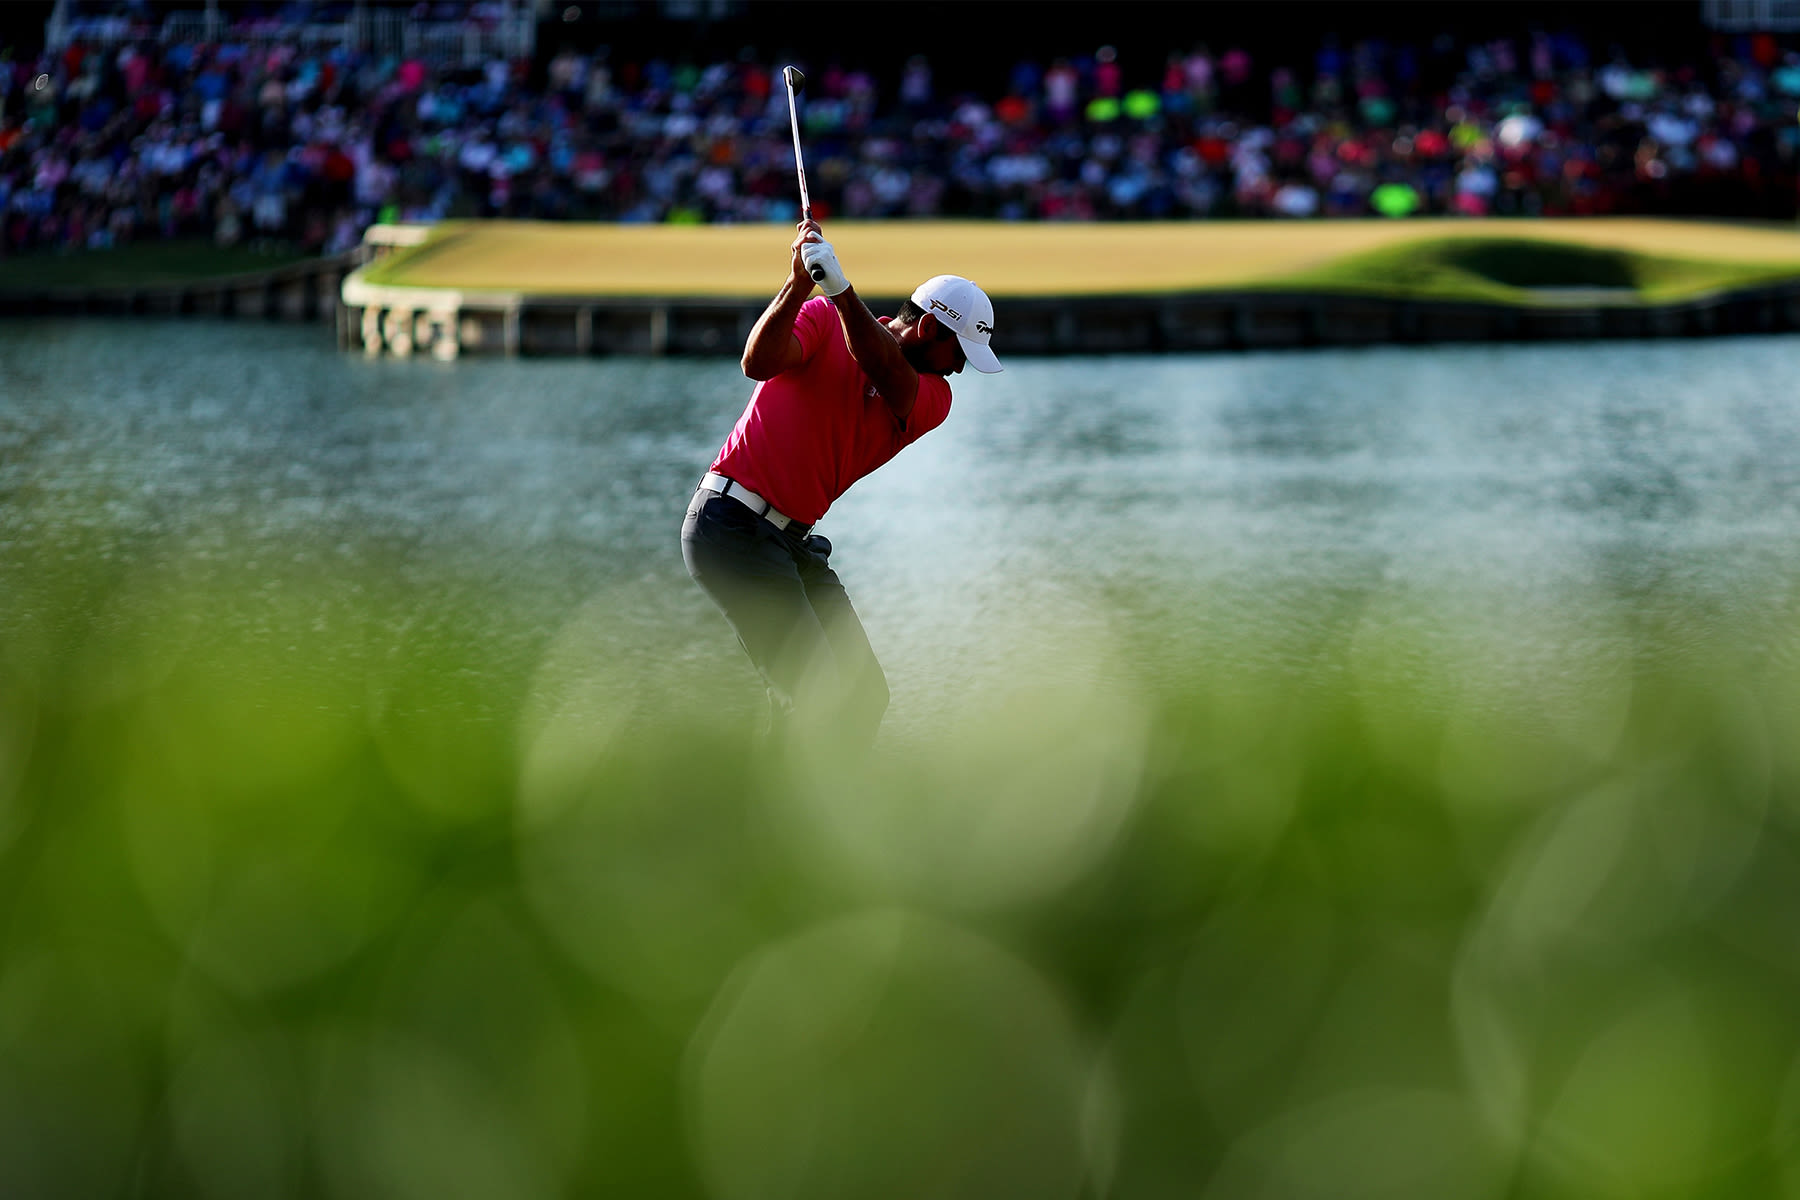 Jason Day of Australia plays his shot from the 17th tee during the final round of THE PLAYERS Championship at the Stadium course at TPC Sawgrass on May 15, 2016 in Ponte Vedra Beach, Florida. (Photo by Richard Heathcote/Getty Images)